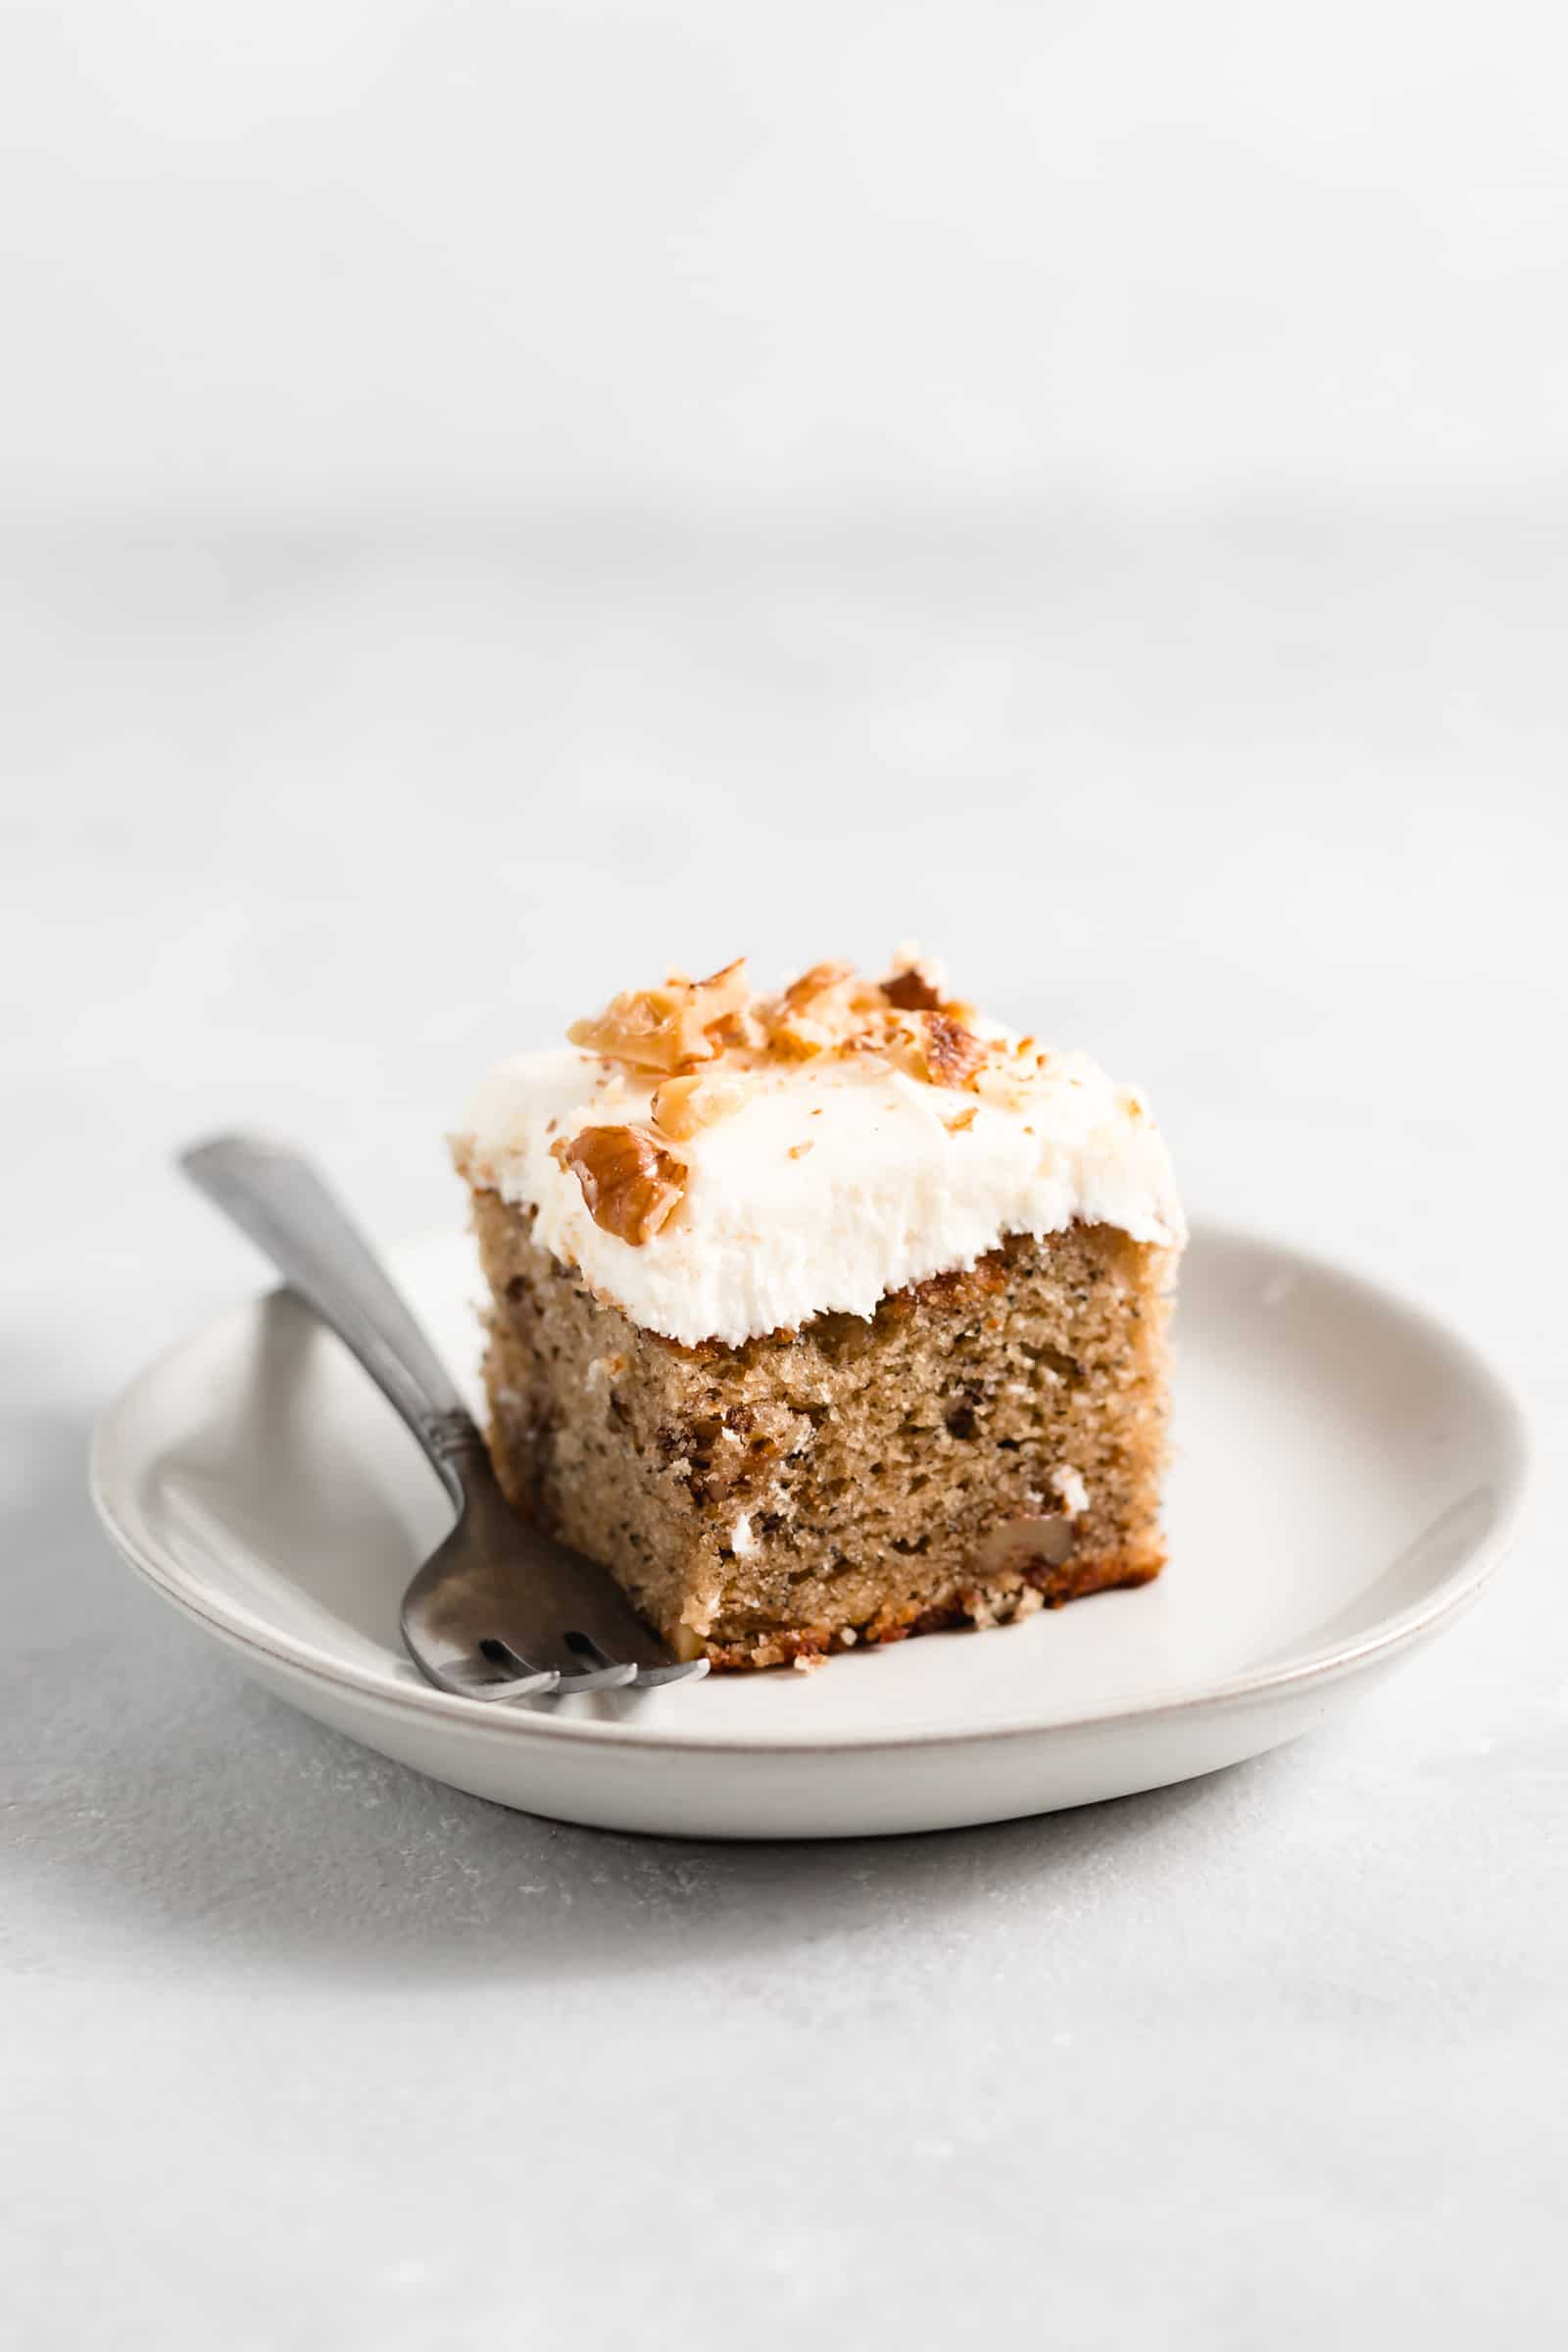 One Layer Banana Nut Cake With Cream Cheese Frosting